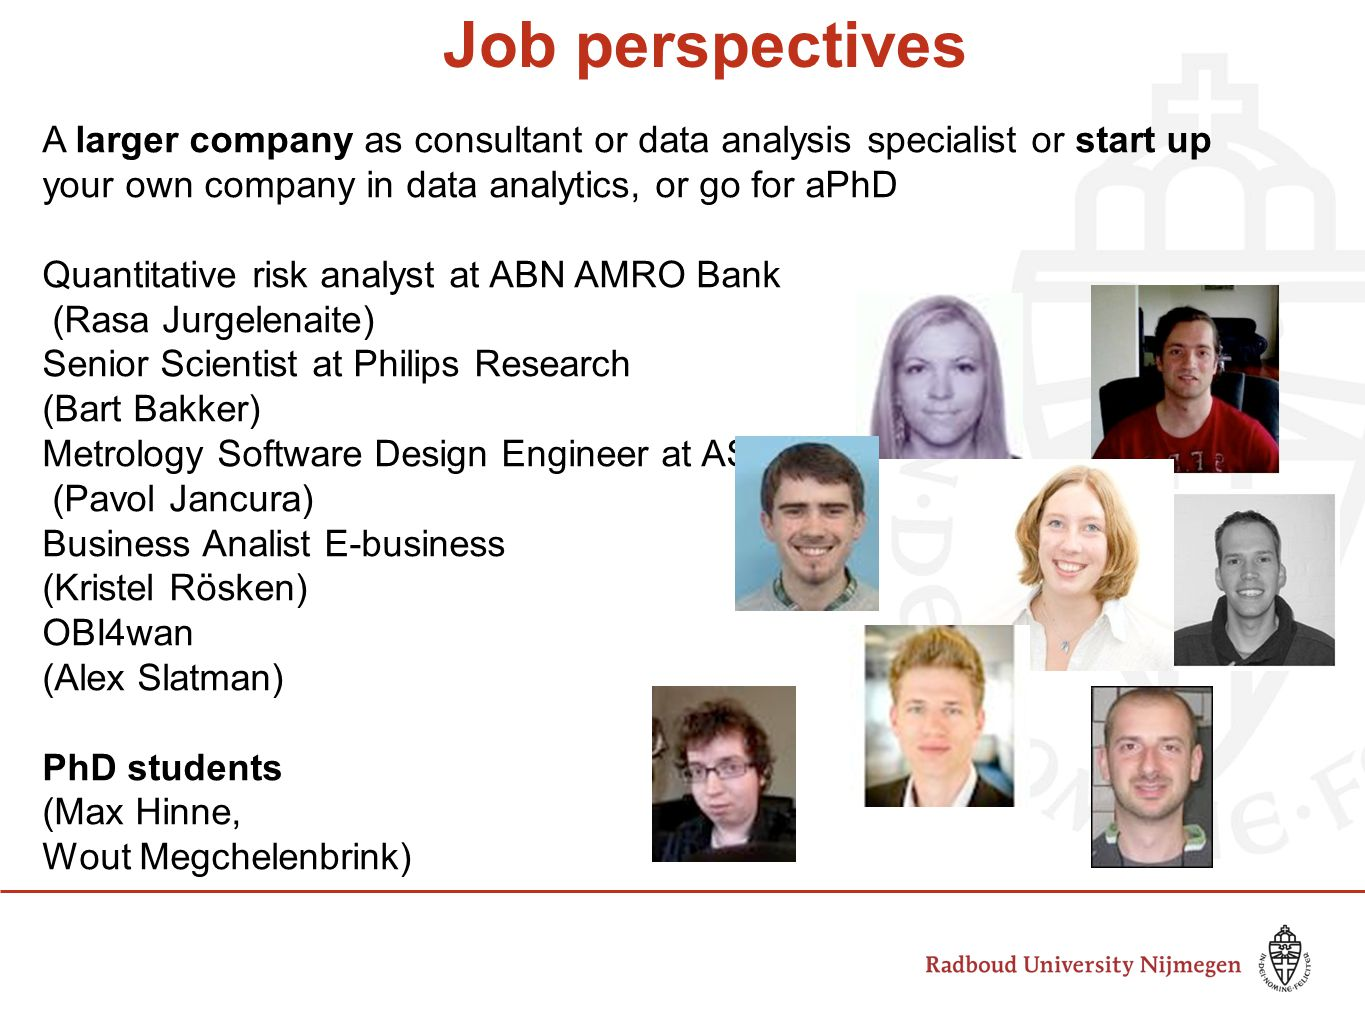 Job perspectives A larger company as consultant or data analysis specialist or start up your own company in data analytics, or go for aPhD Quantitative risk analyst at ABN AMRO Bank (Rasa Jurgelenaite) Senior Scientist at Philips Research (Bart Bakker) Metrology Software Design Engineer at ASM (Pavol Jancura) Business Analist E-business at VVV Nederland BV (Kristel Rösken) OBI4wan (Alex Slatman) PhD students (Max Hinne, Wout Megchelenbrink)